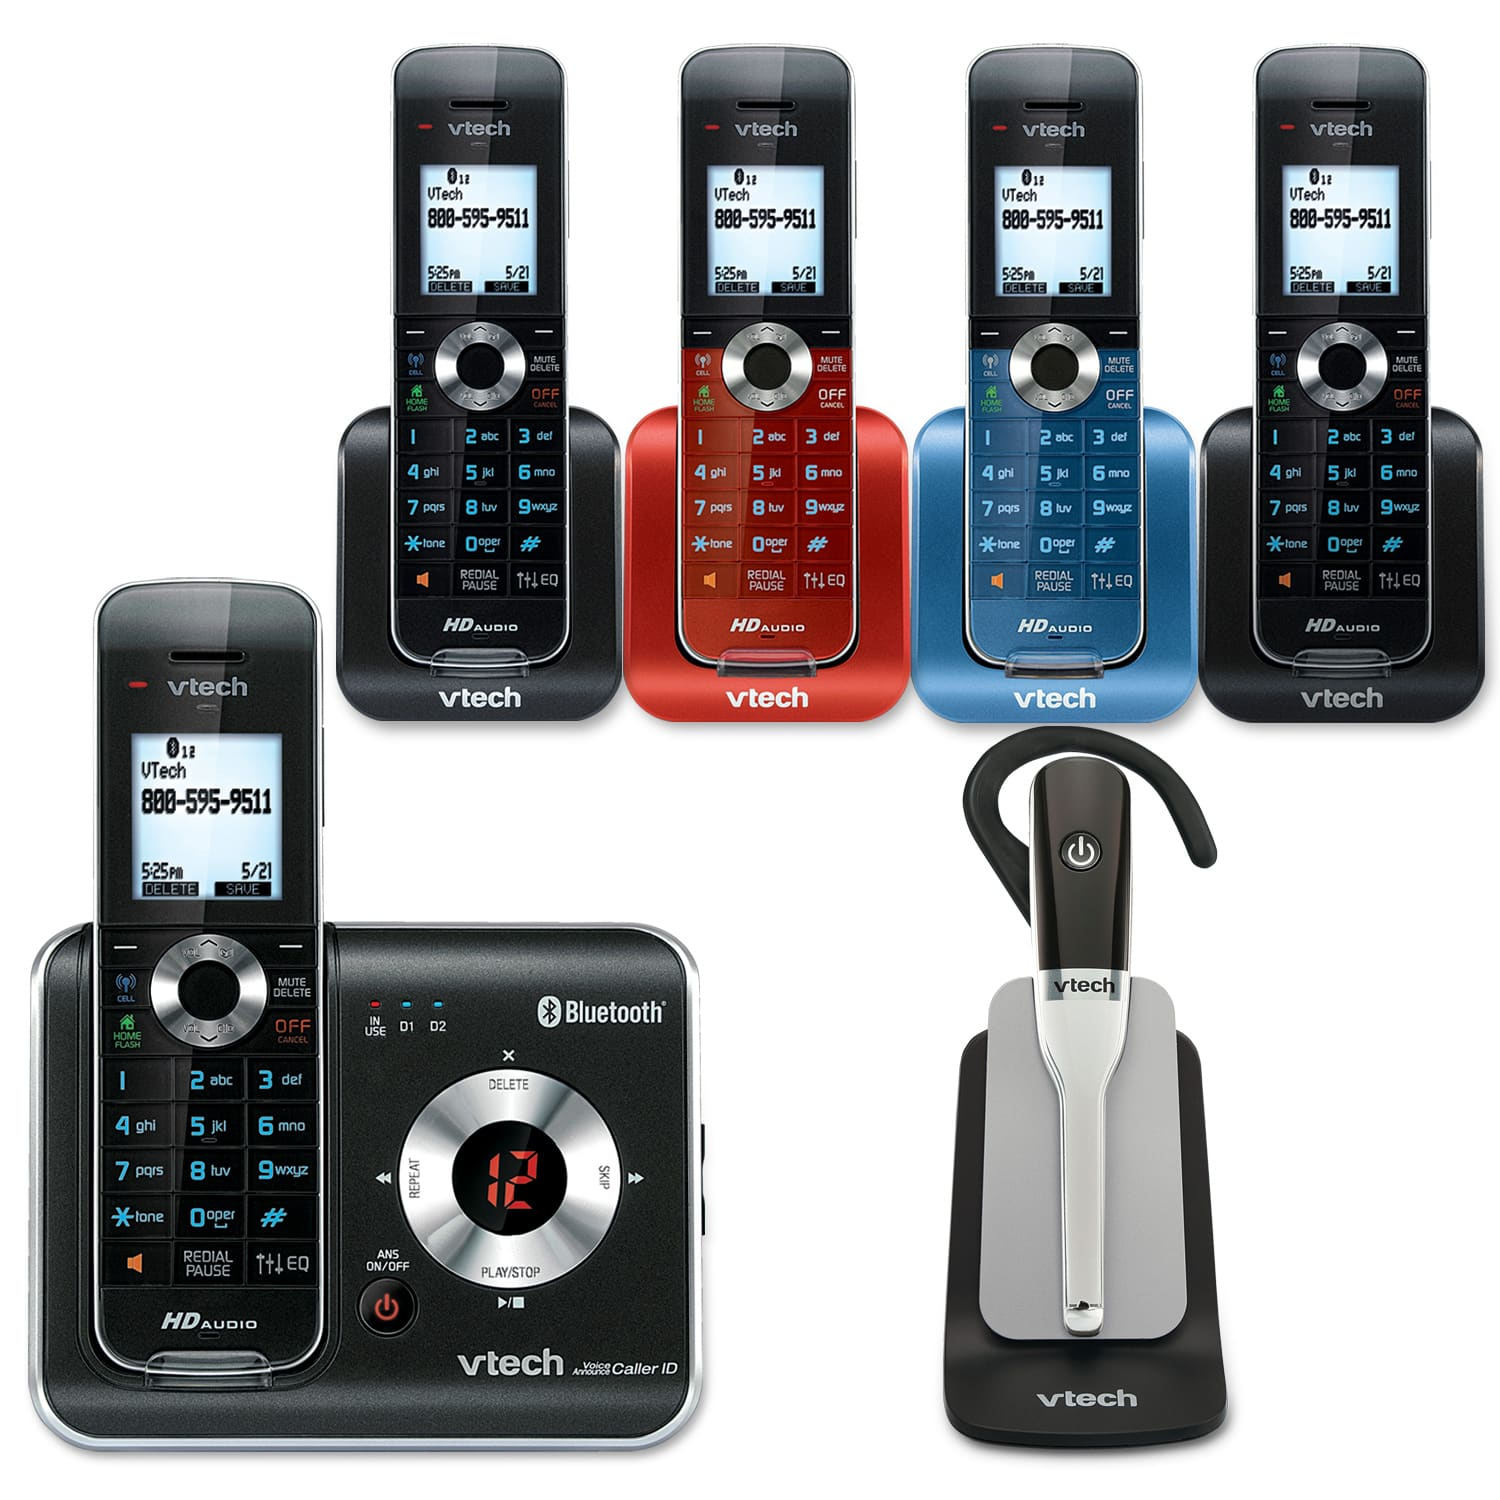 5 handset connect to cell answering system with cordless headset rh vtechphones com VTech InnoTab 2 Instruction Manual VTech DECT 6.0 User Manual